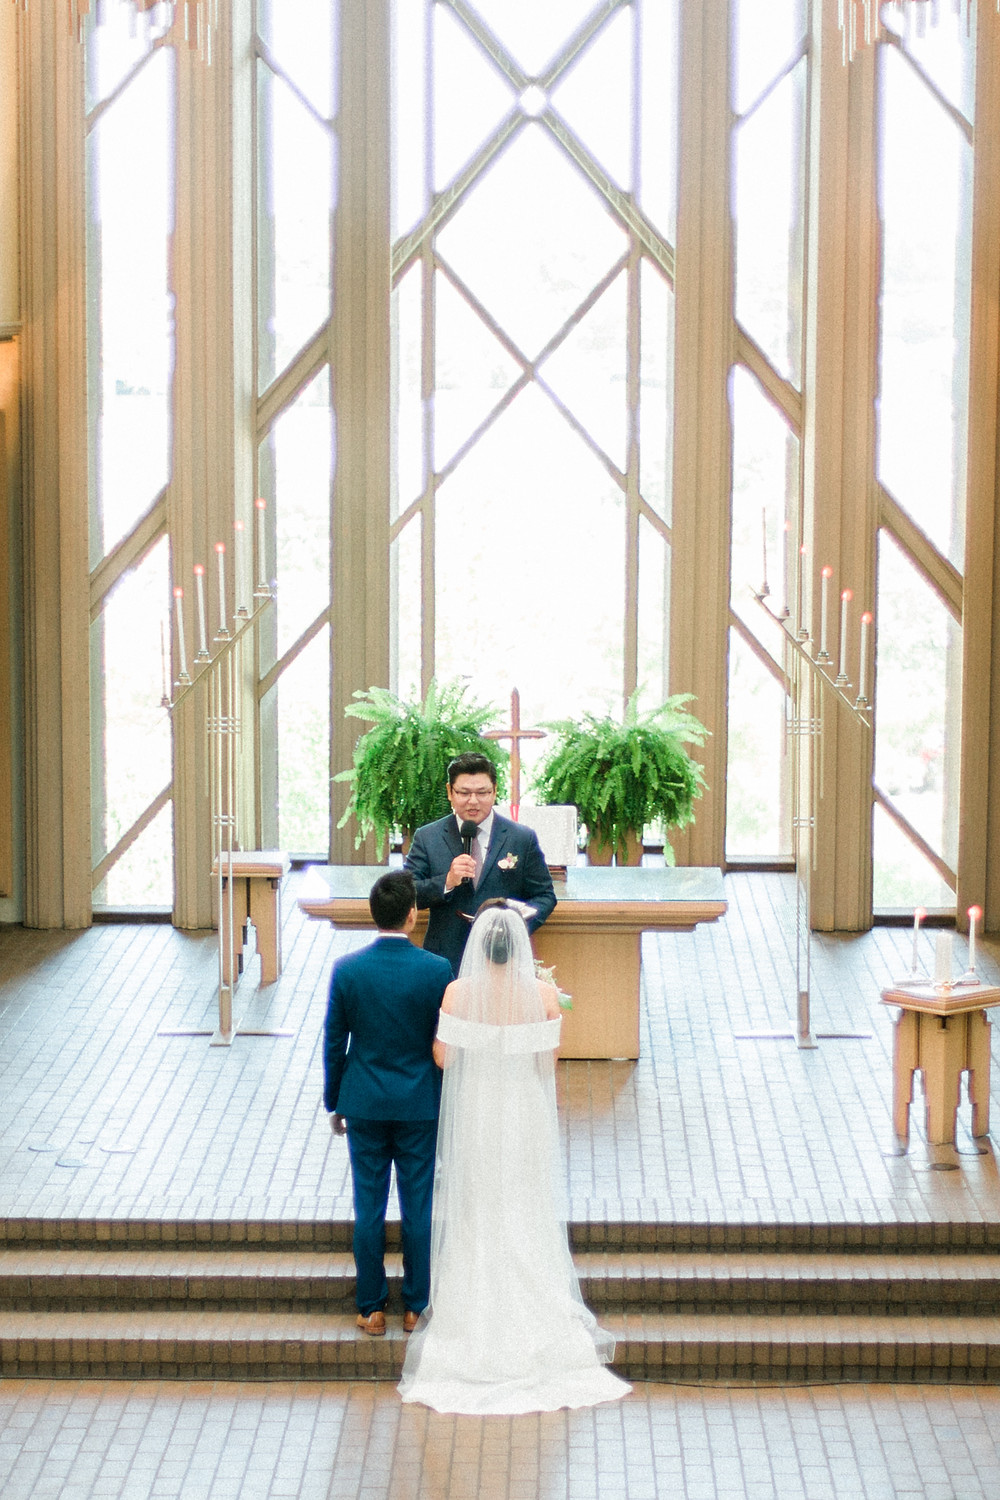 Christian couple in front of cross in religious wedding in Dallas, Texas